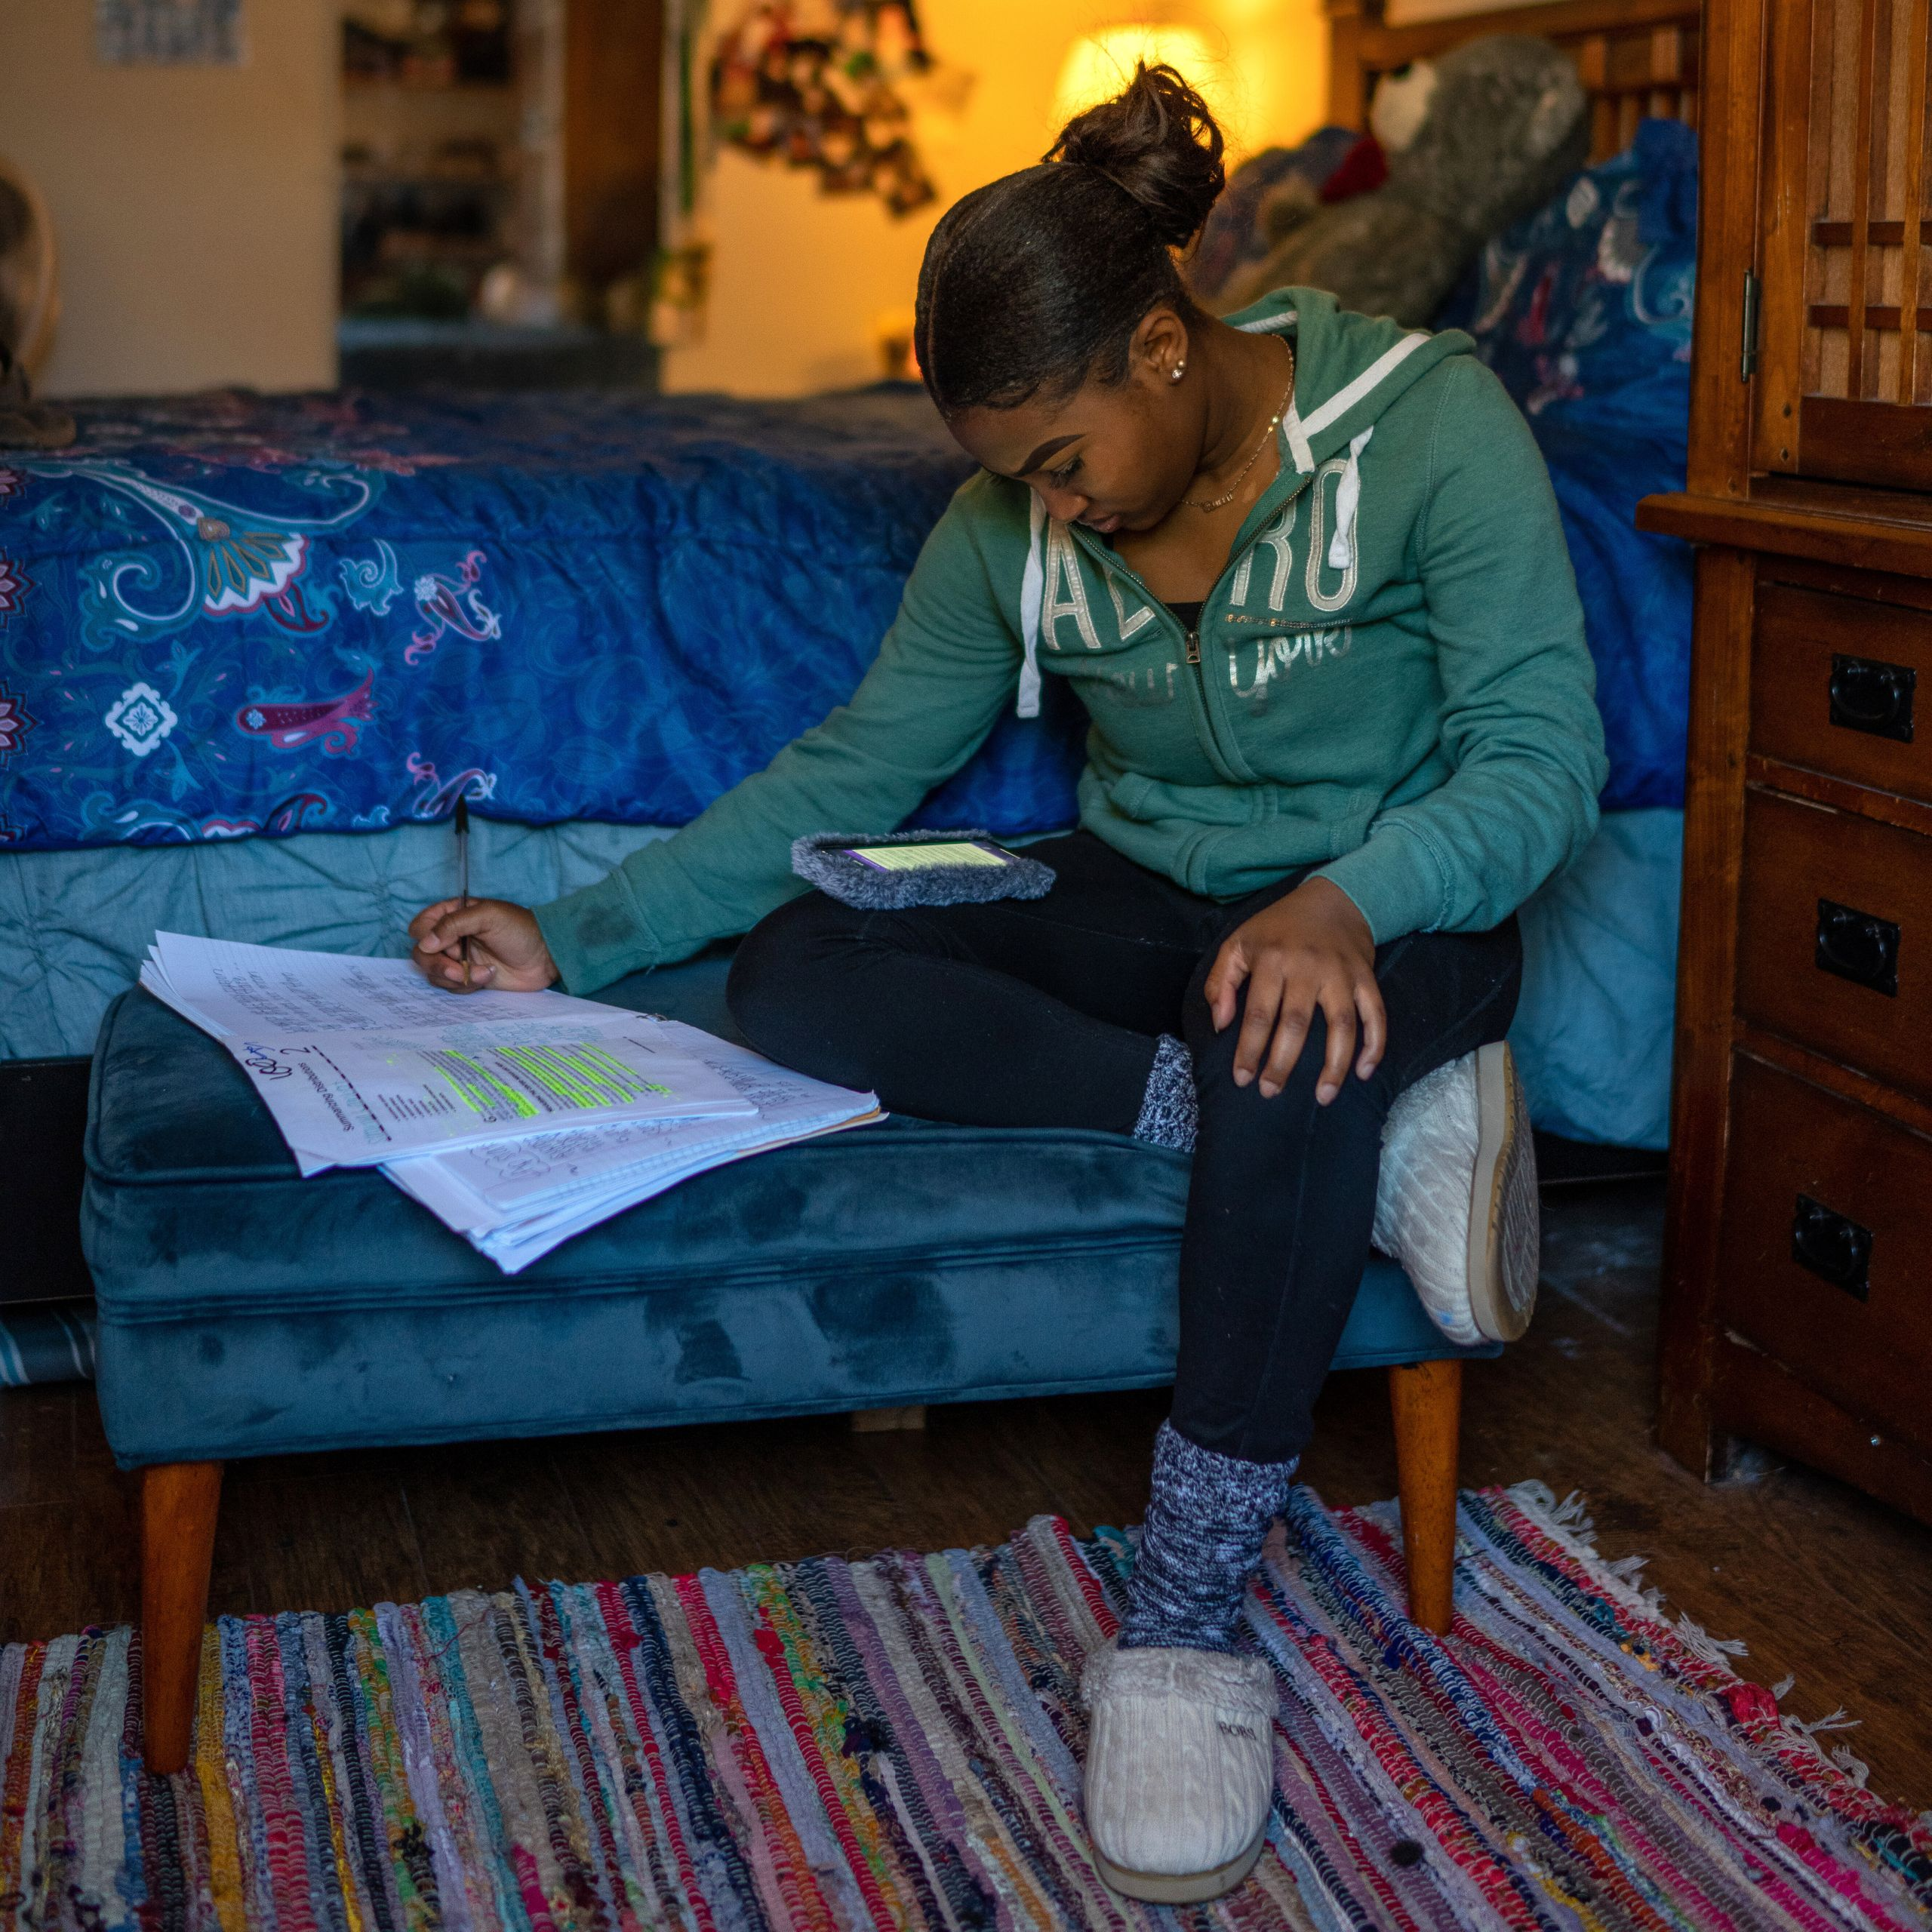 Satoriya Lambert does homework in her room after the coronavirus shuttered schools for the rest of the year in New Orleans. S